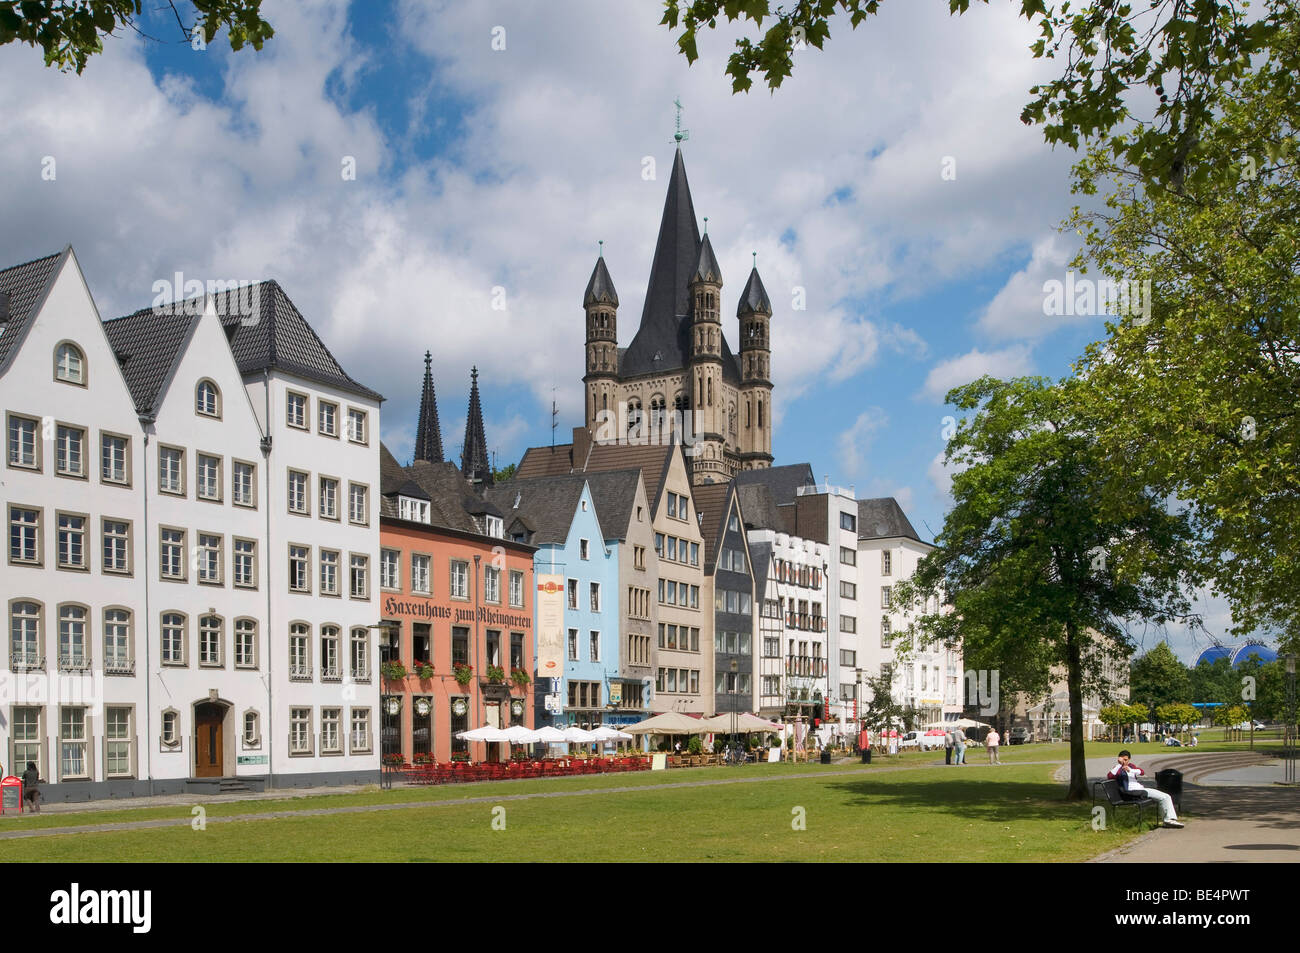 Cologne's historic town centre with Gross St. Martin Cathedral as seen from the bank of the Rhine River, Cologne, - Stock Image